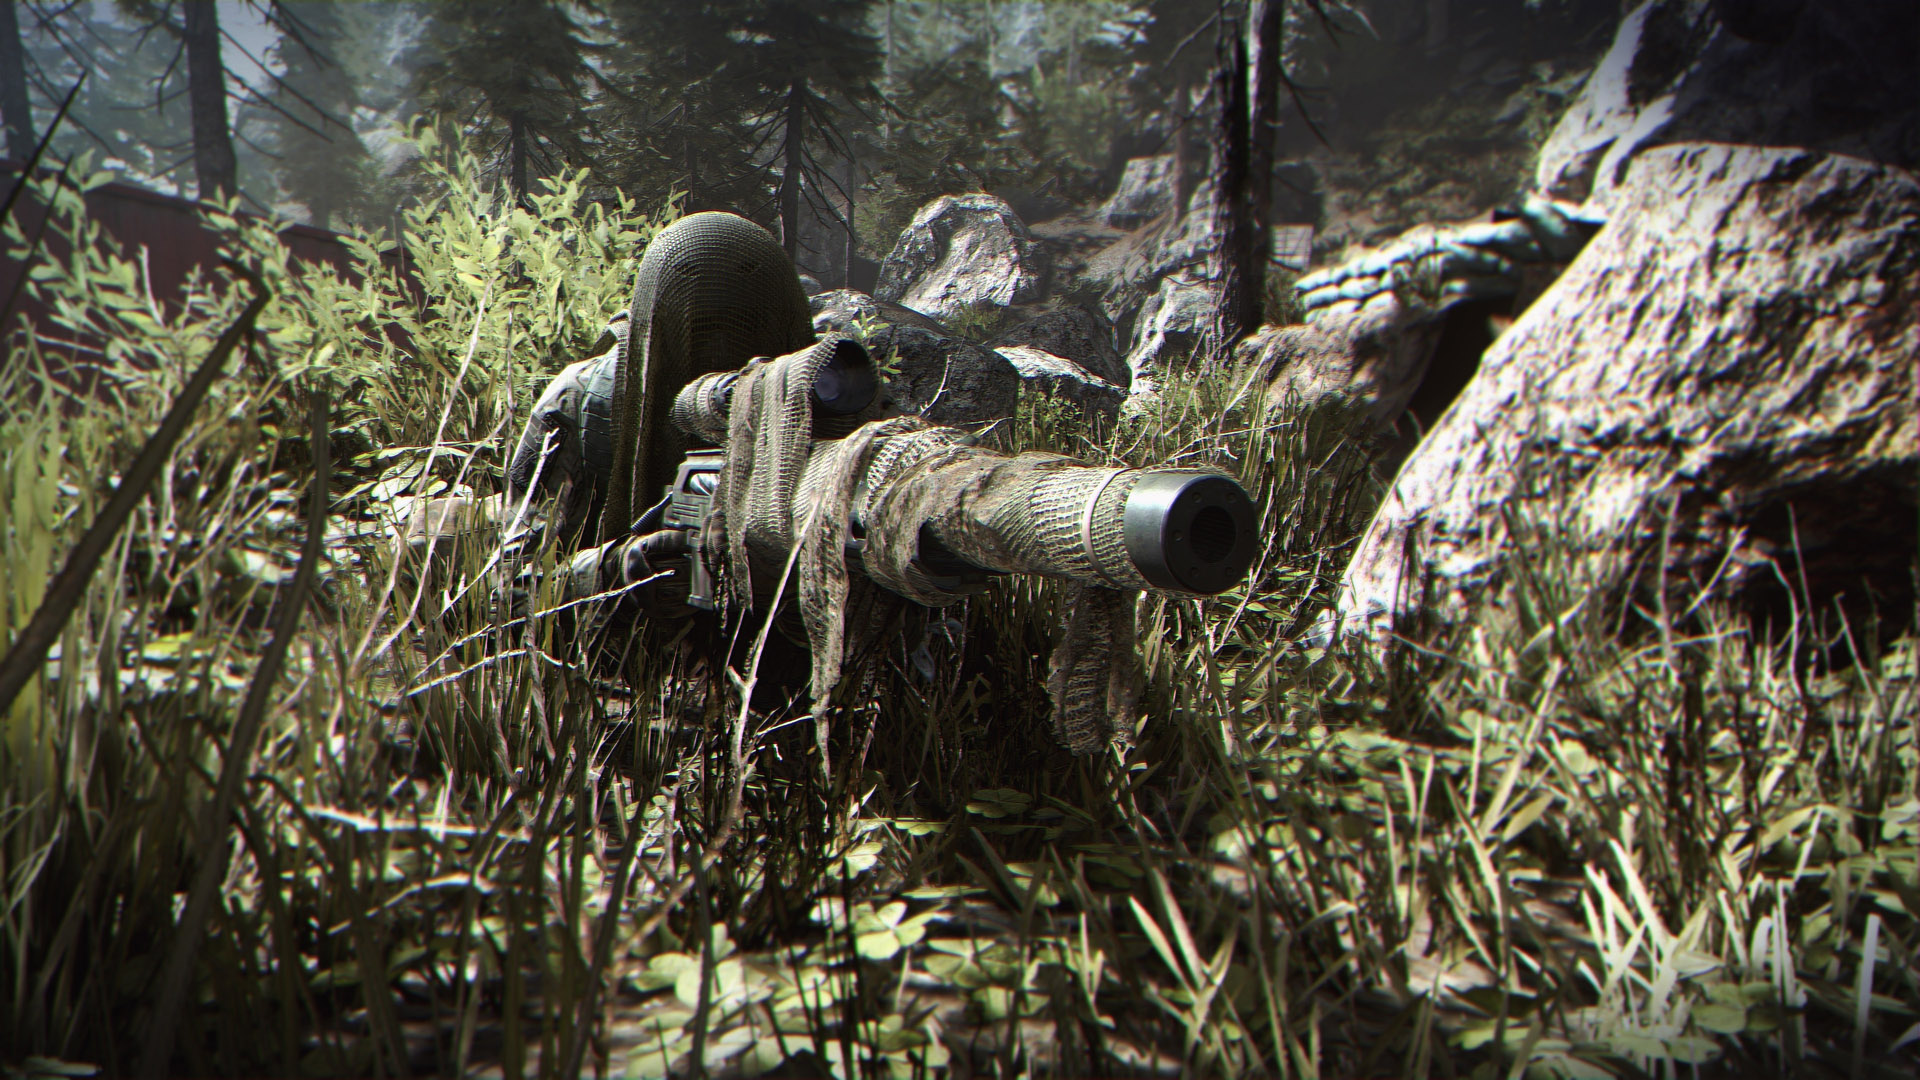 Call Of Duty Modern Warfare Weapons All The Cod Modern Warfare Guns We Know About So Far Pc Gamer